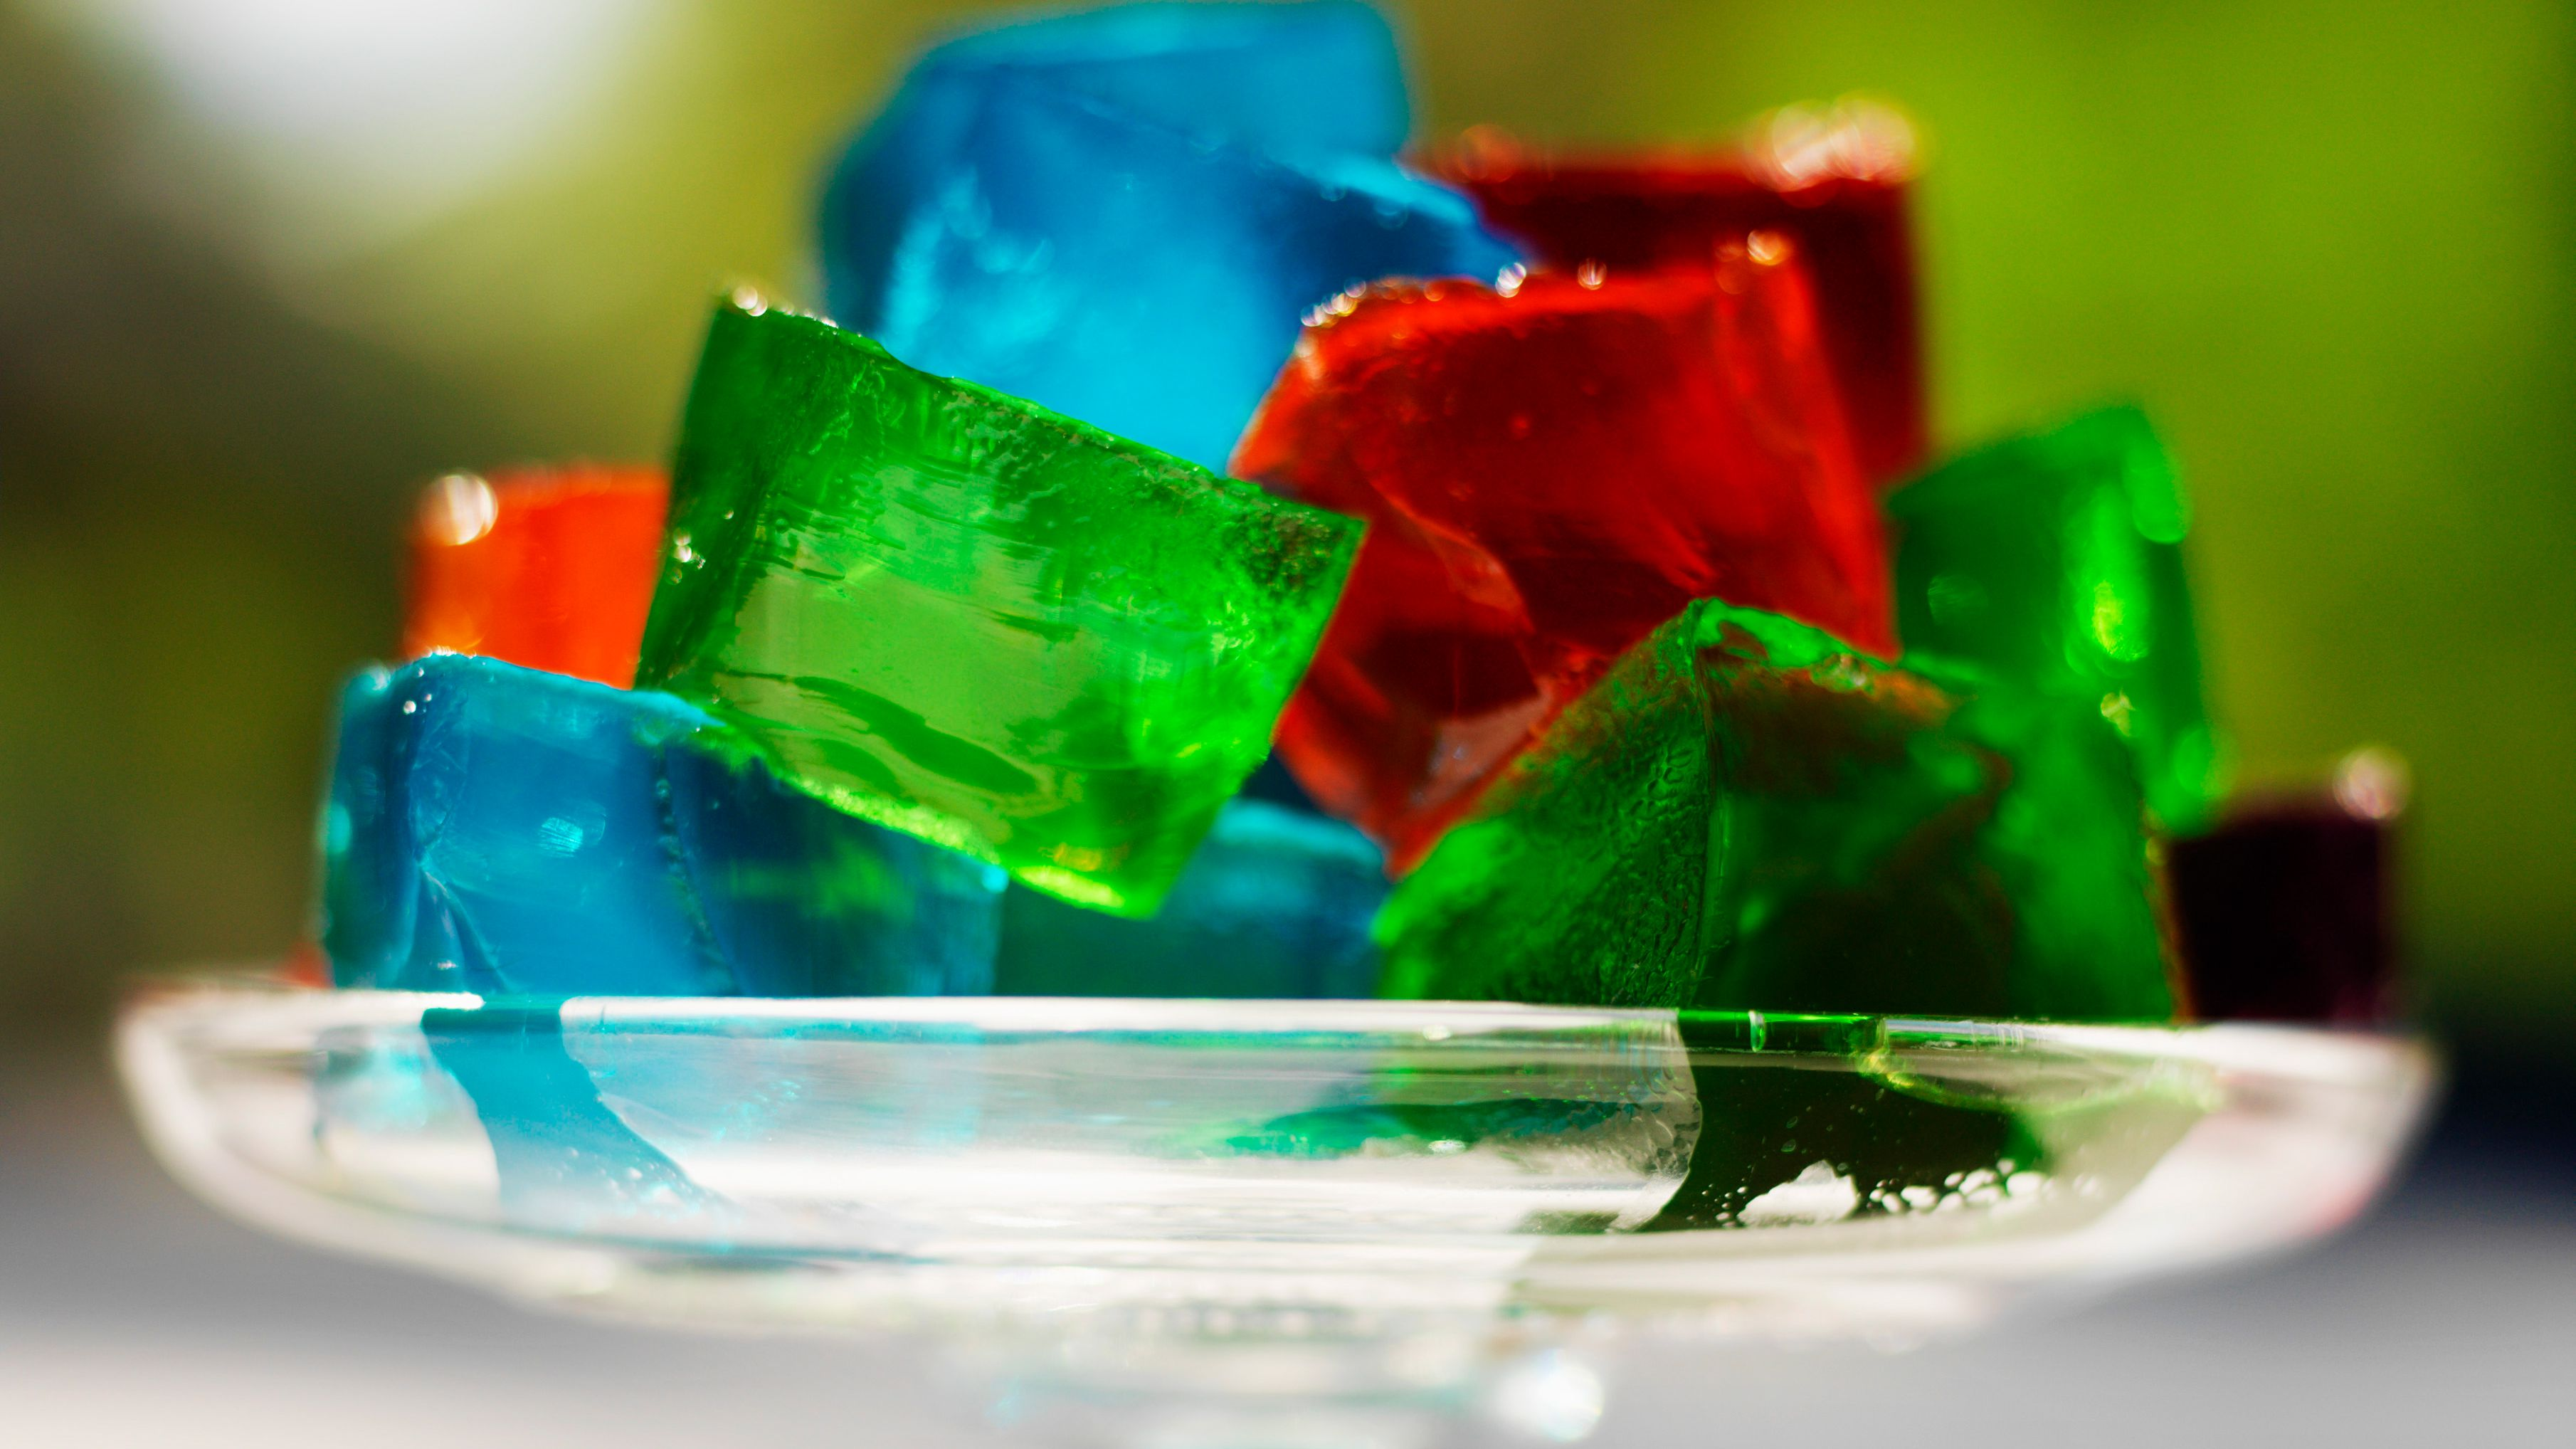 Learn What Agar-agar Is and How to Use It in a Recipe